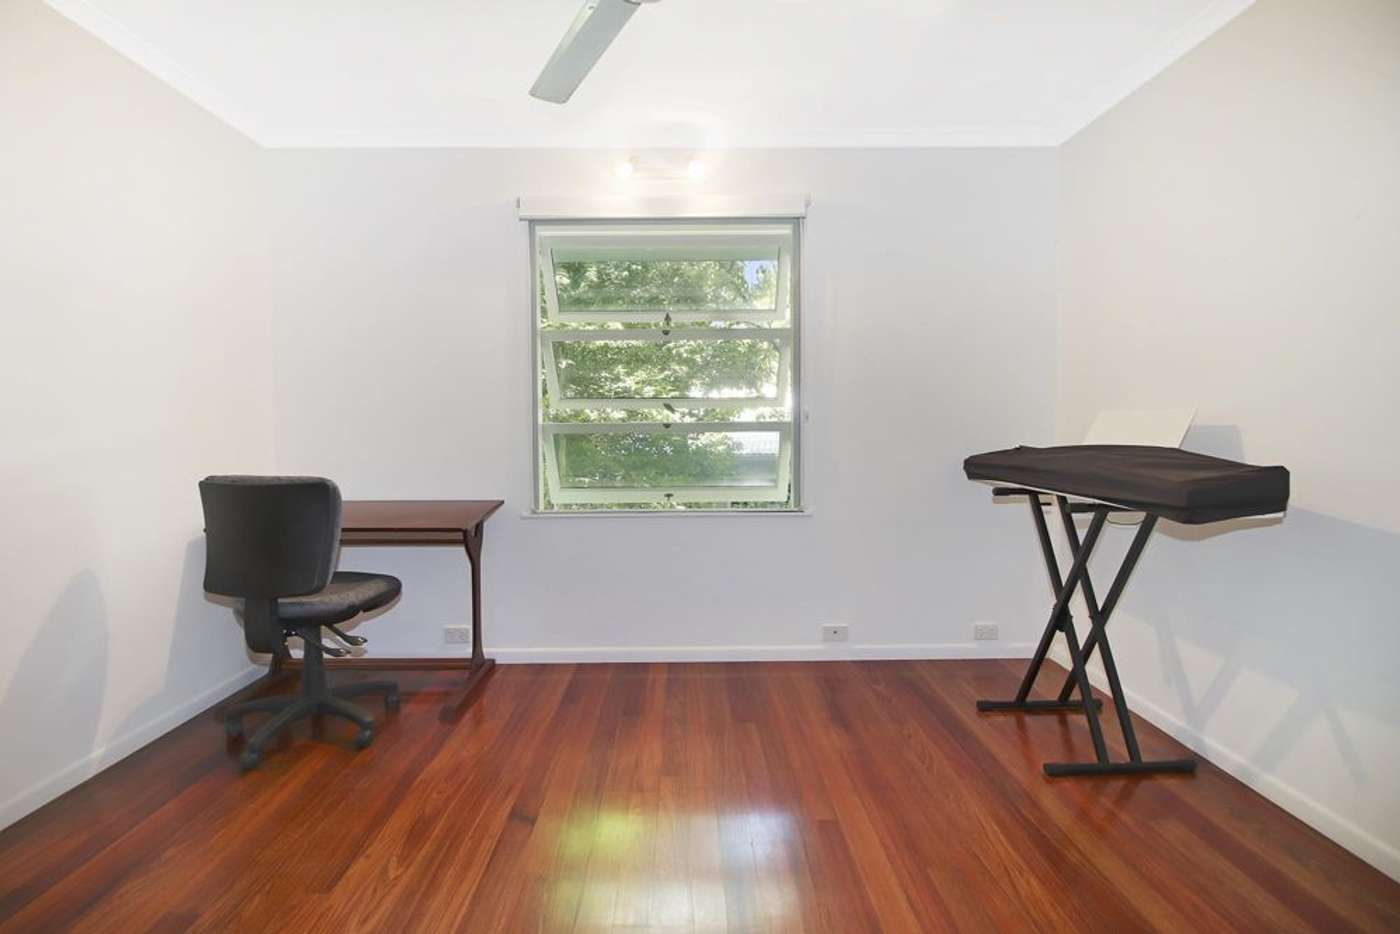 Seventh view of Homely house listing, 61 Hillview Crescent, Whitfield QLD 4870